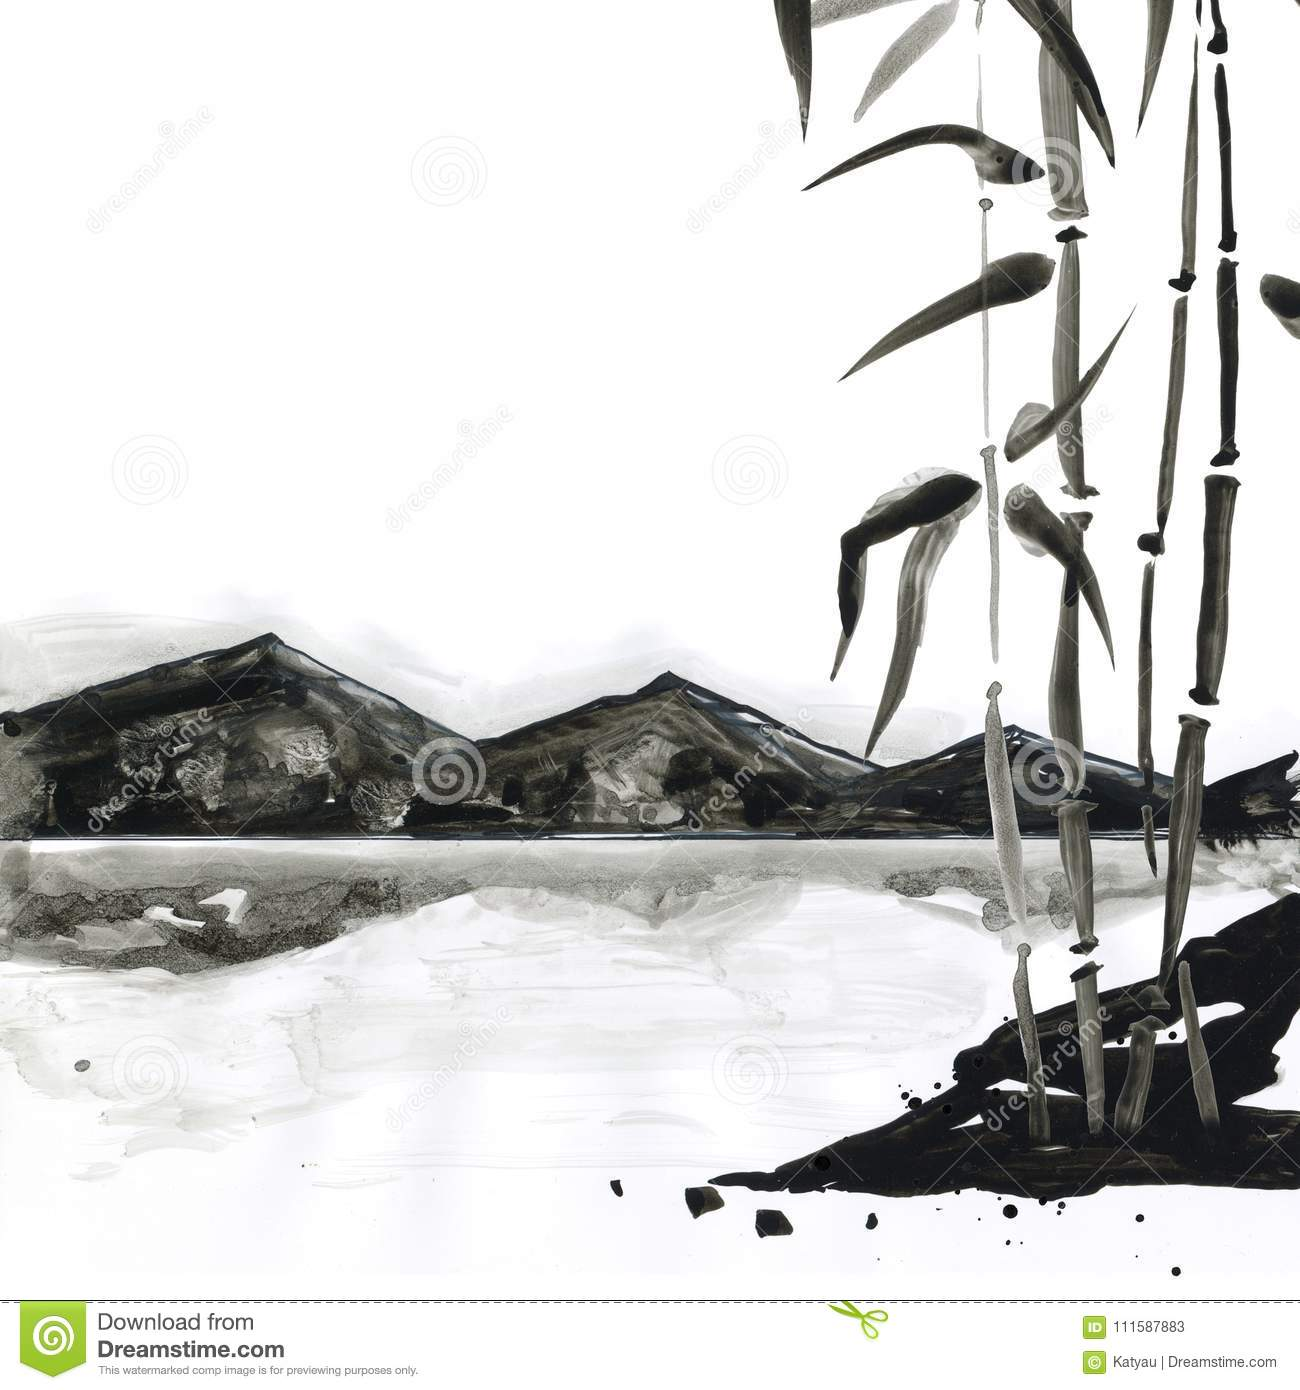 Bamboo in japanese painting style traditional beautiful watercolor hand drawn illustration